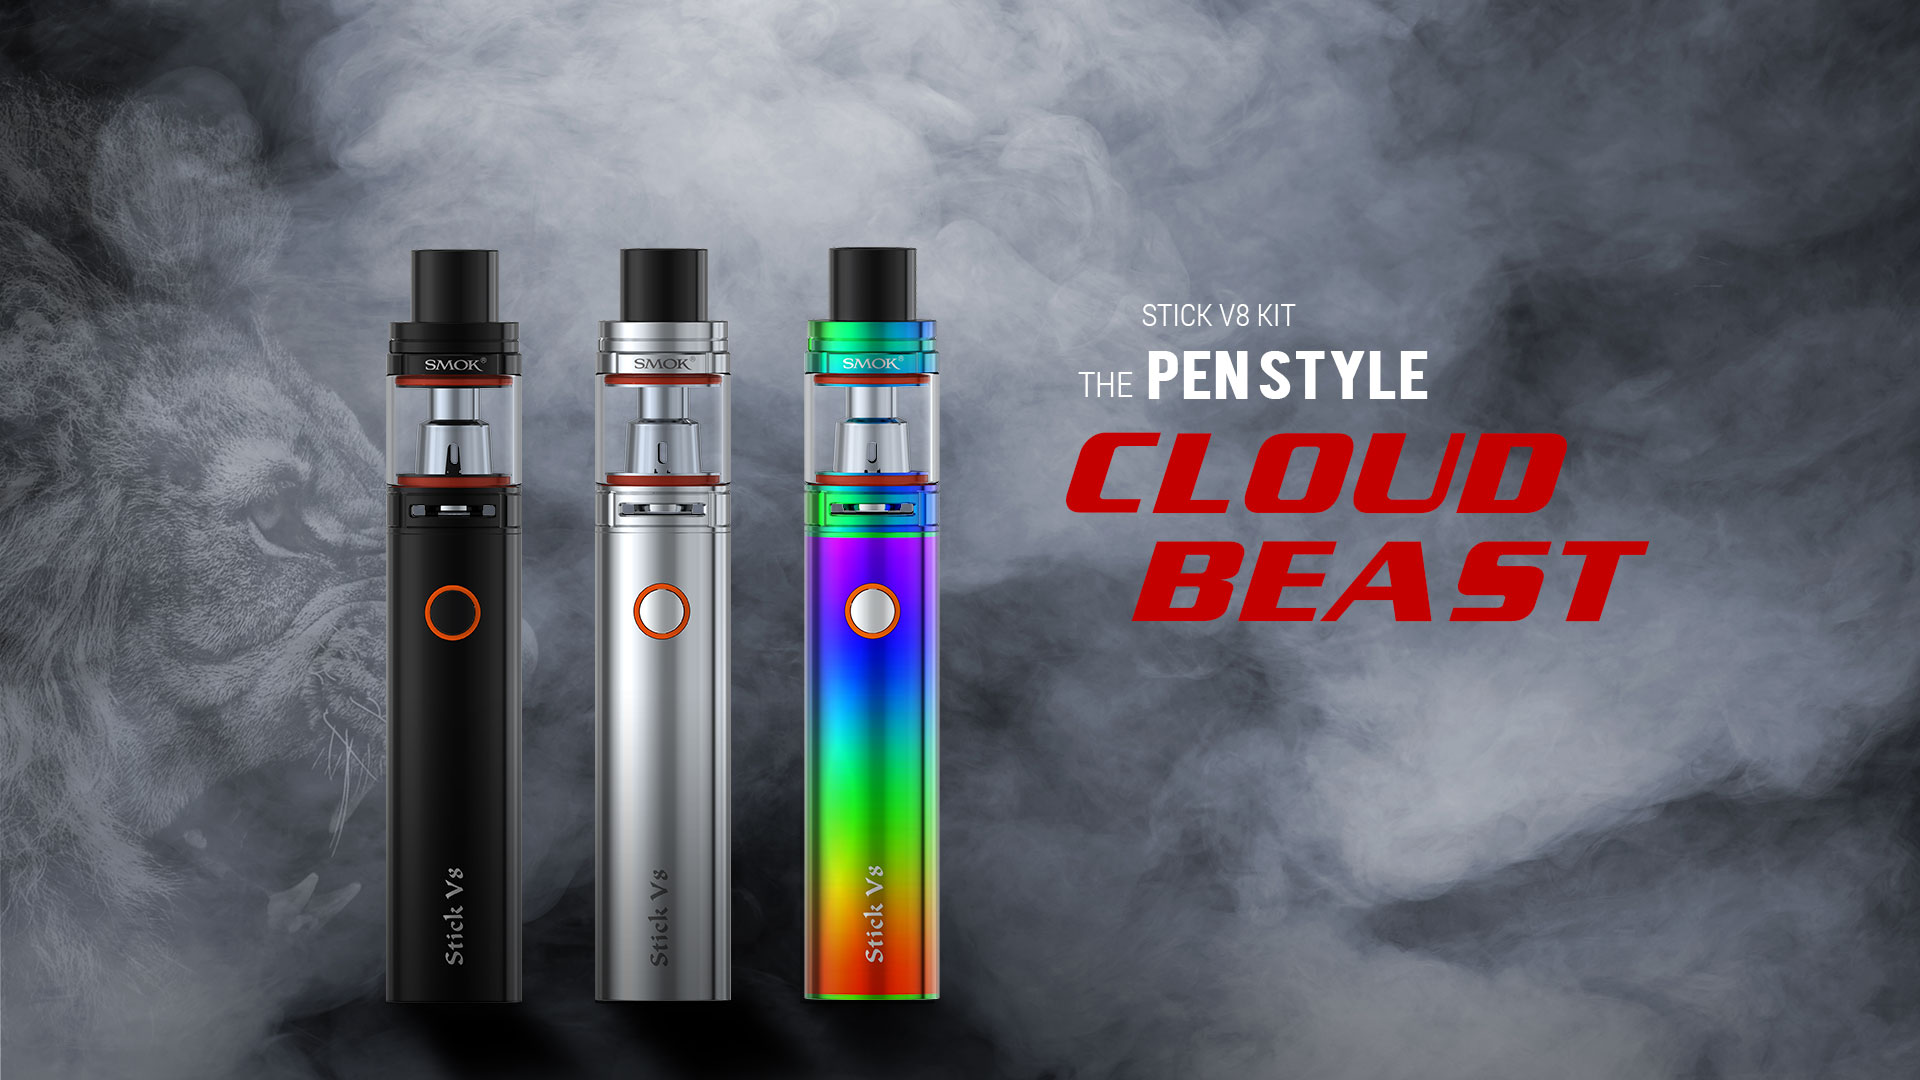 SMOK Stick V8 Kit - Vape Kits | SMOK® Official